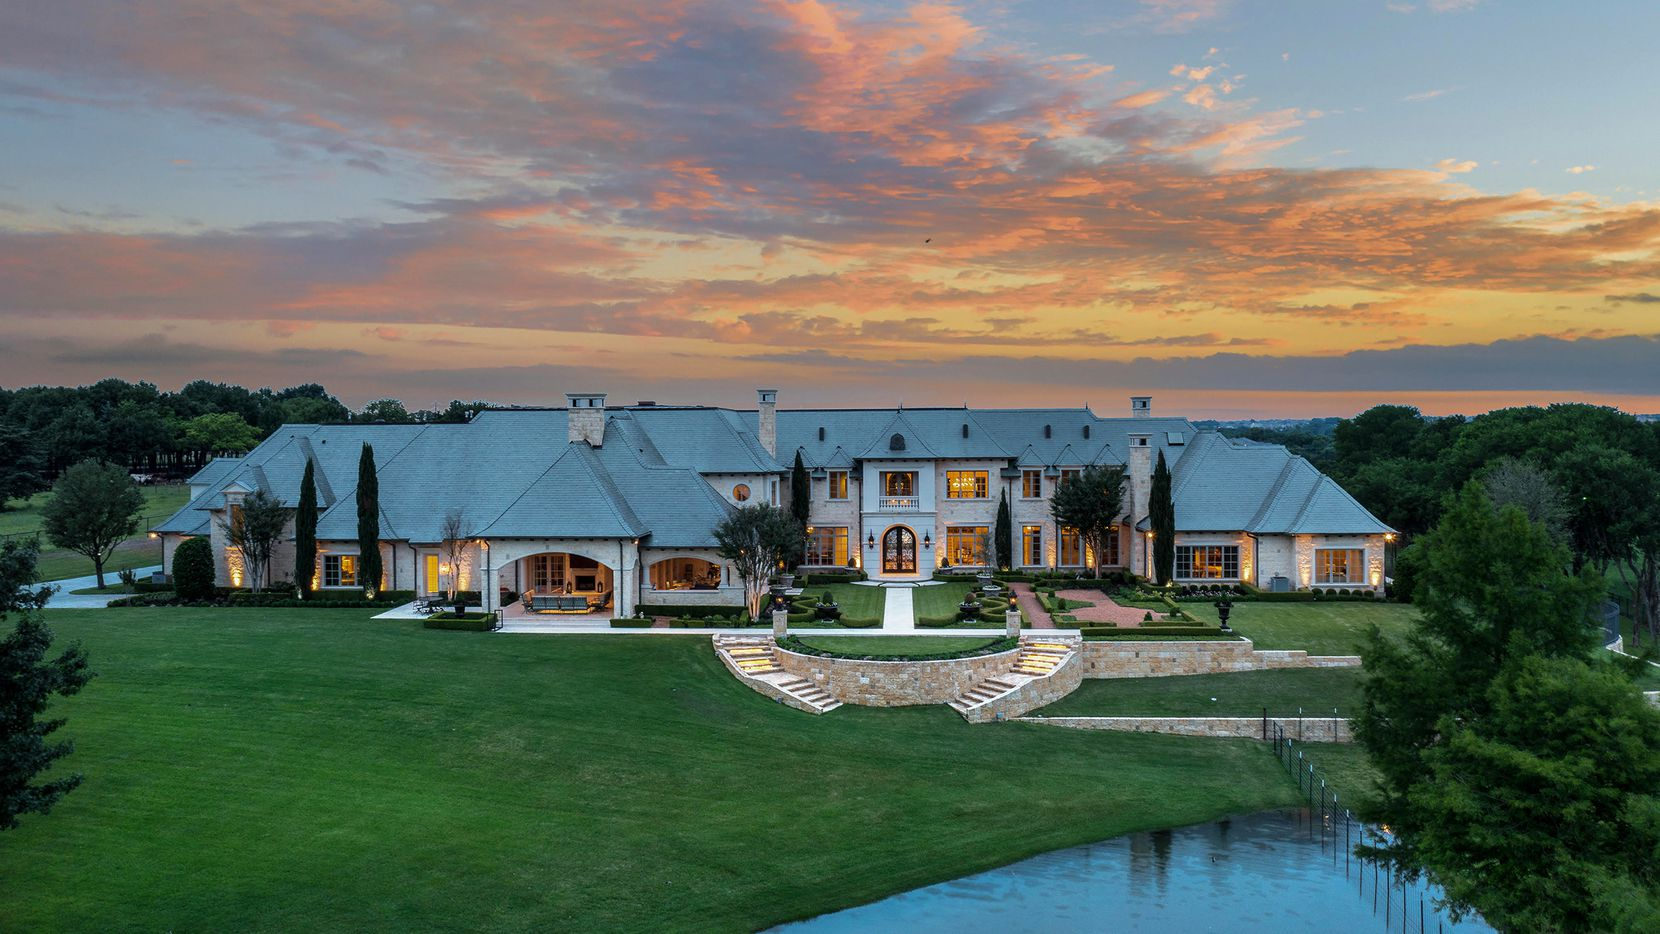 The 15.8-acre gated estate at 1201 Gray Branch Road in McKinney is offered at $11,995,000.